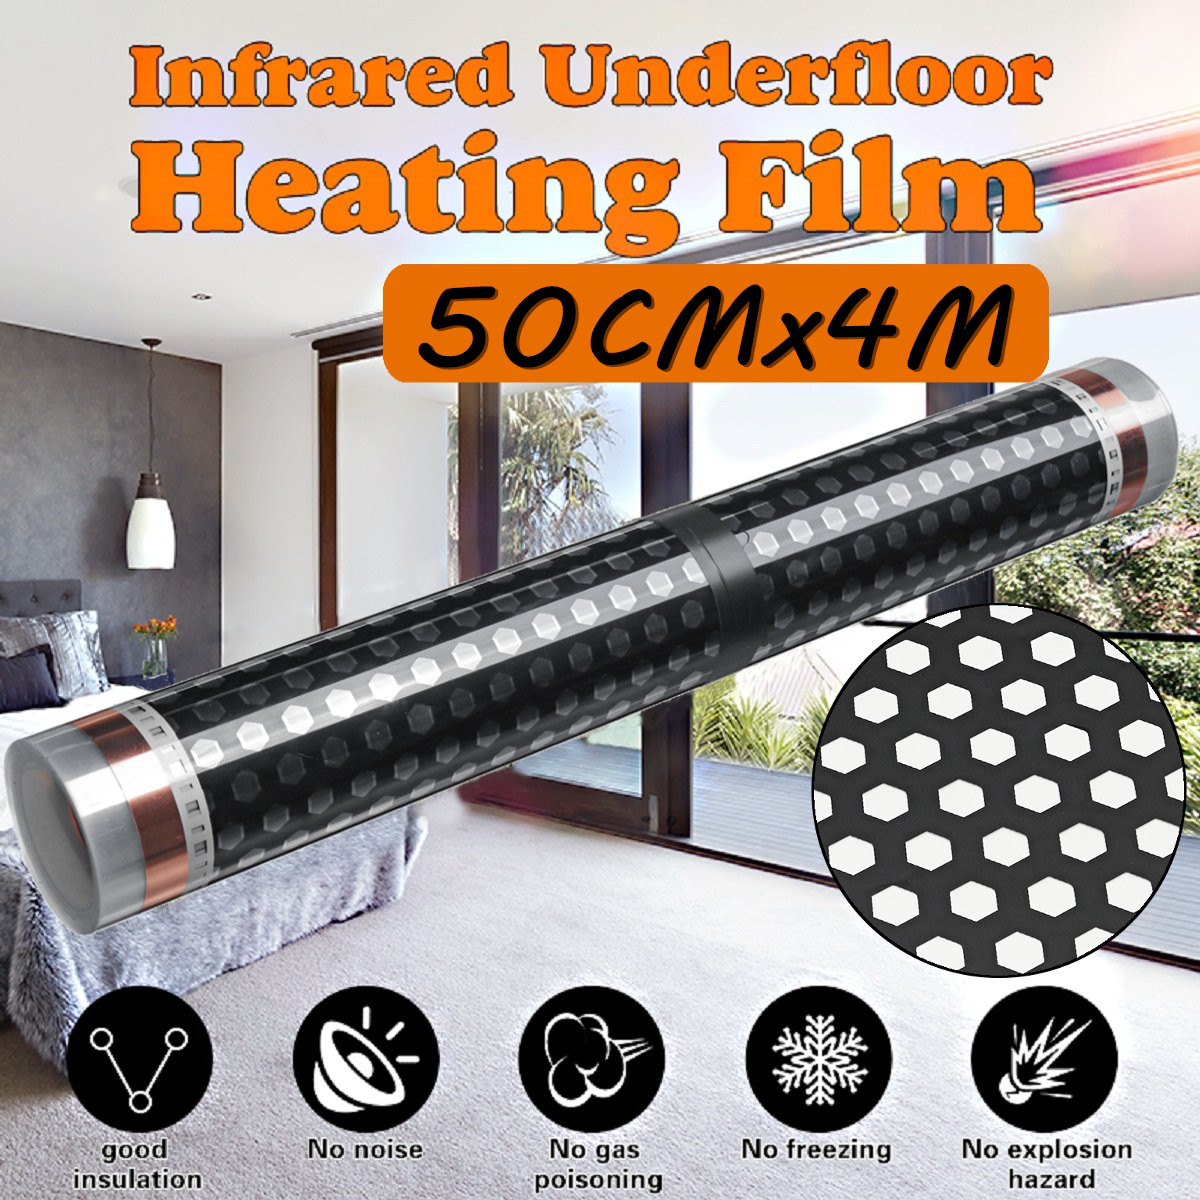 50CM*4M Floor Infrared Underfloor Heating Film Honeycomb Reticulated 220V For Room